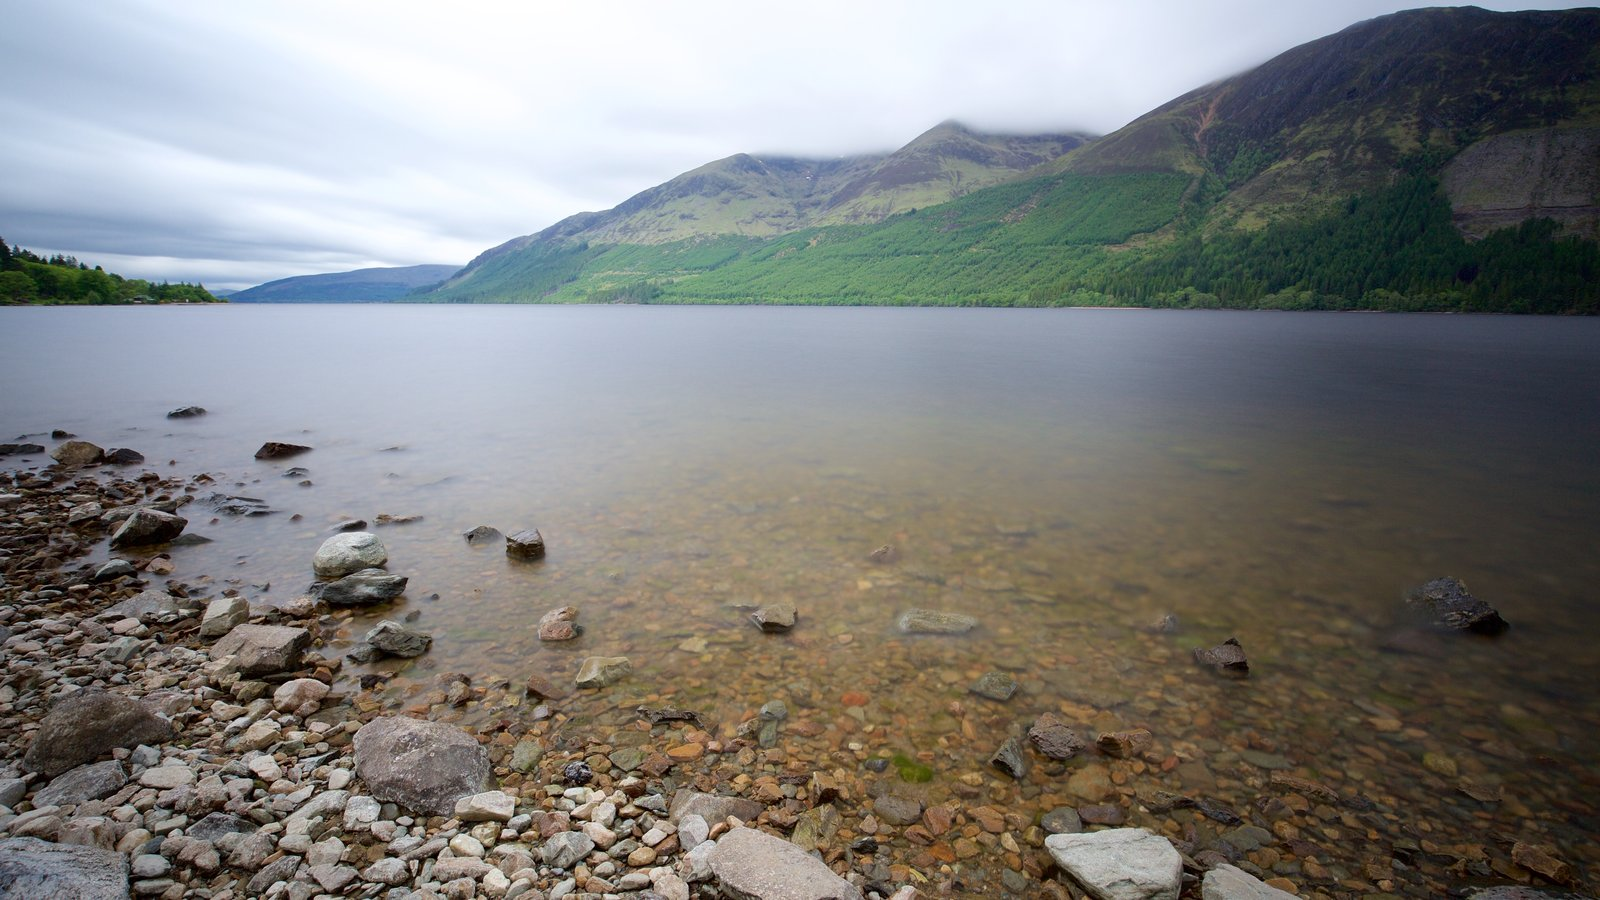 Fort William featuring a lake or waterhole and mountains